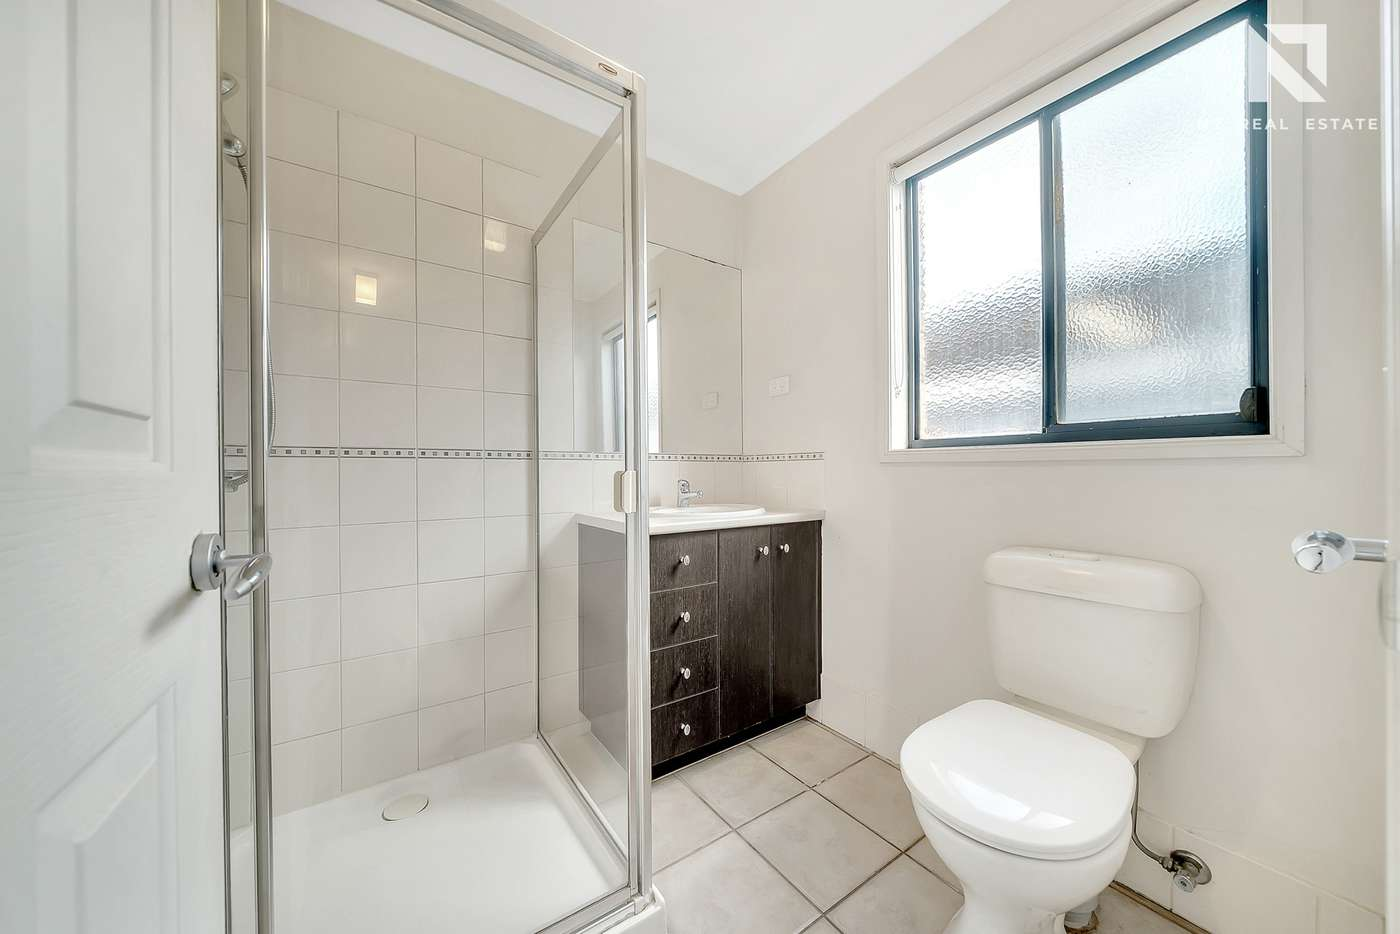 Sixth view of Homely house listing, 14 Buvelot Crescent, Caroline Springs VIC 3023